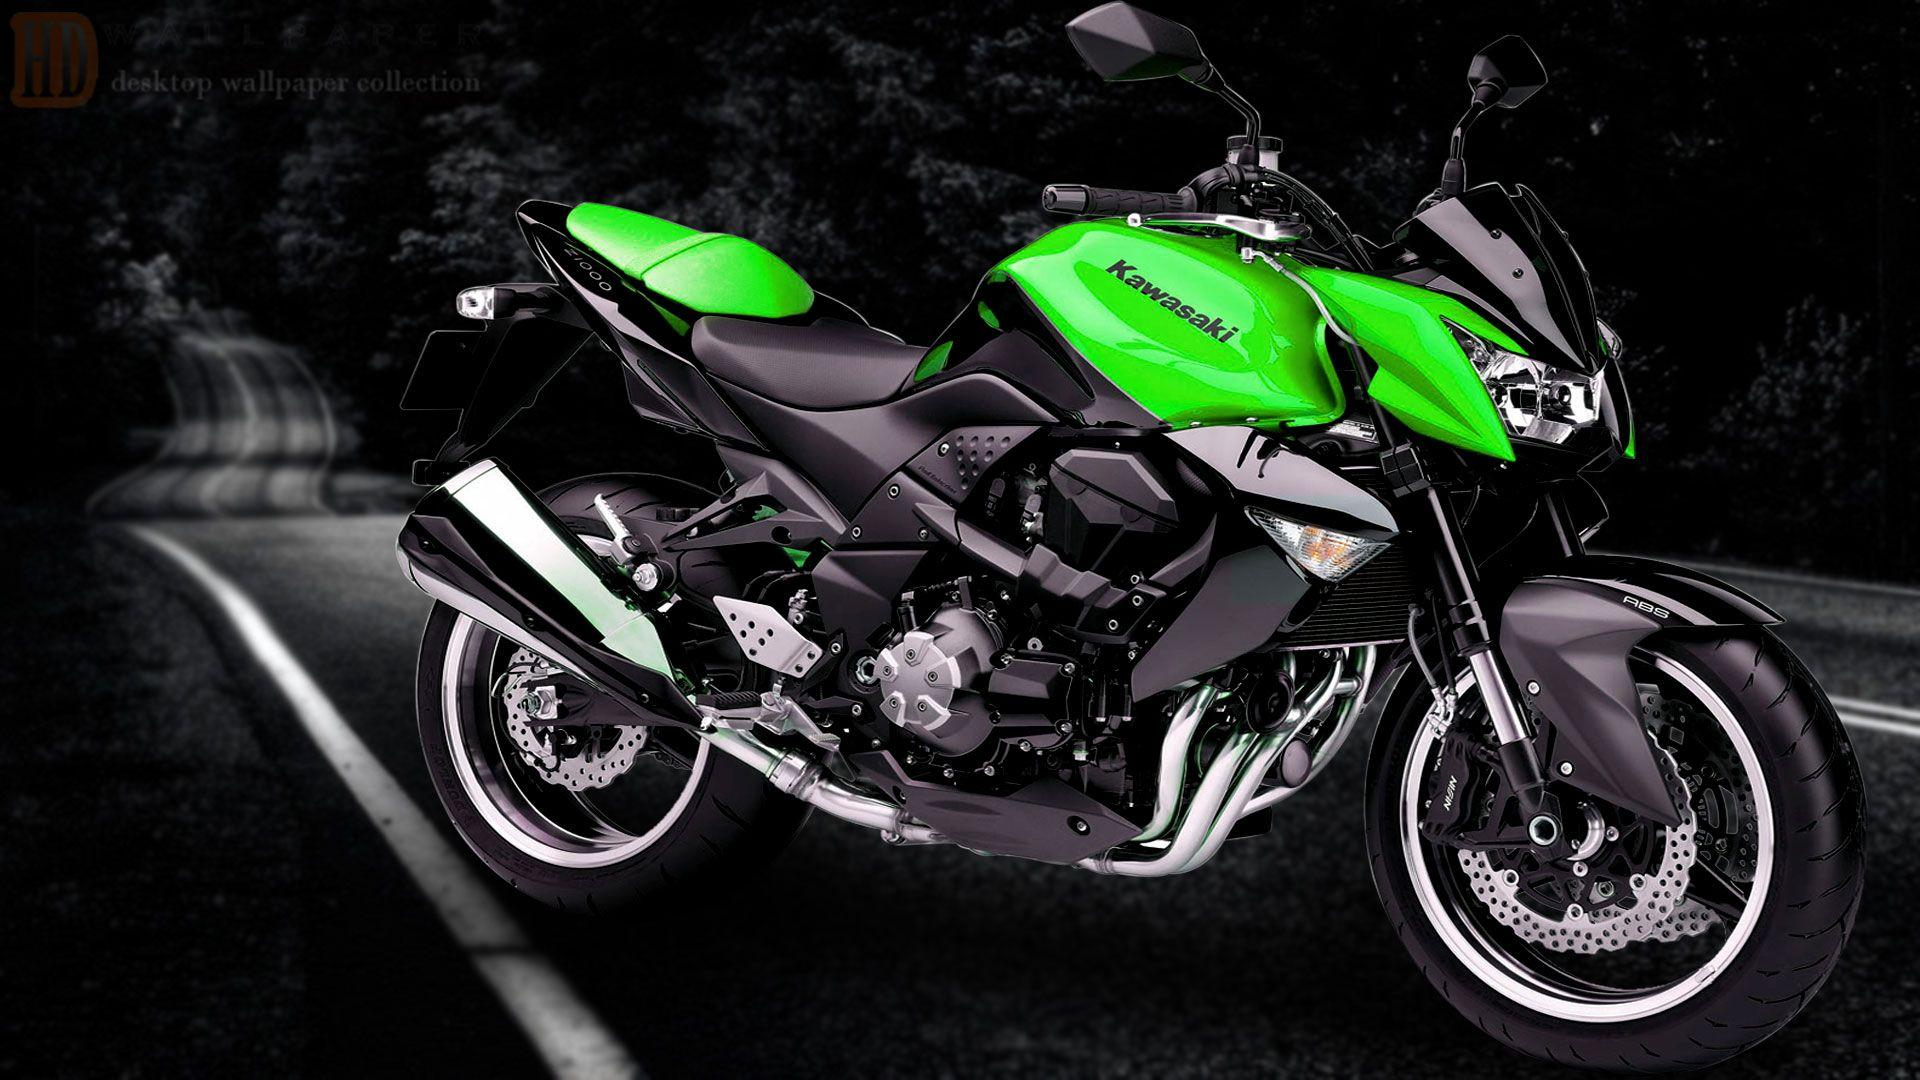 Kawasaki Z800 Wallpapers HD